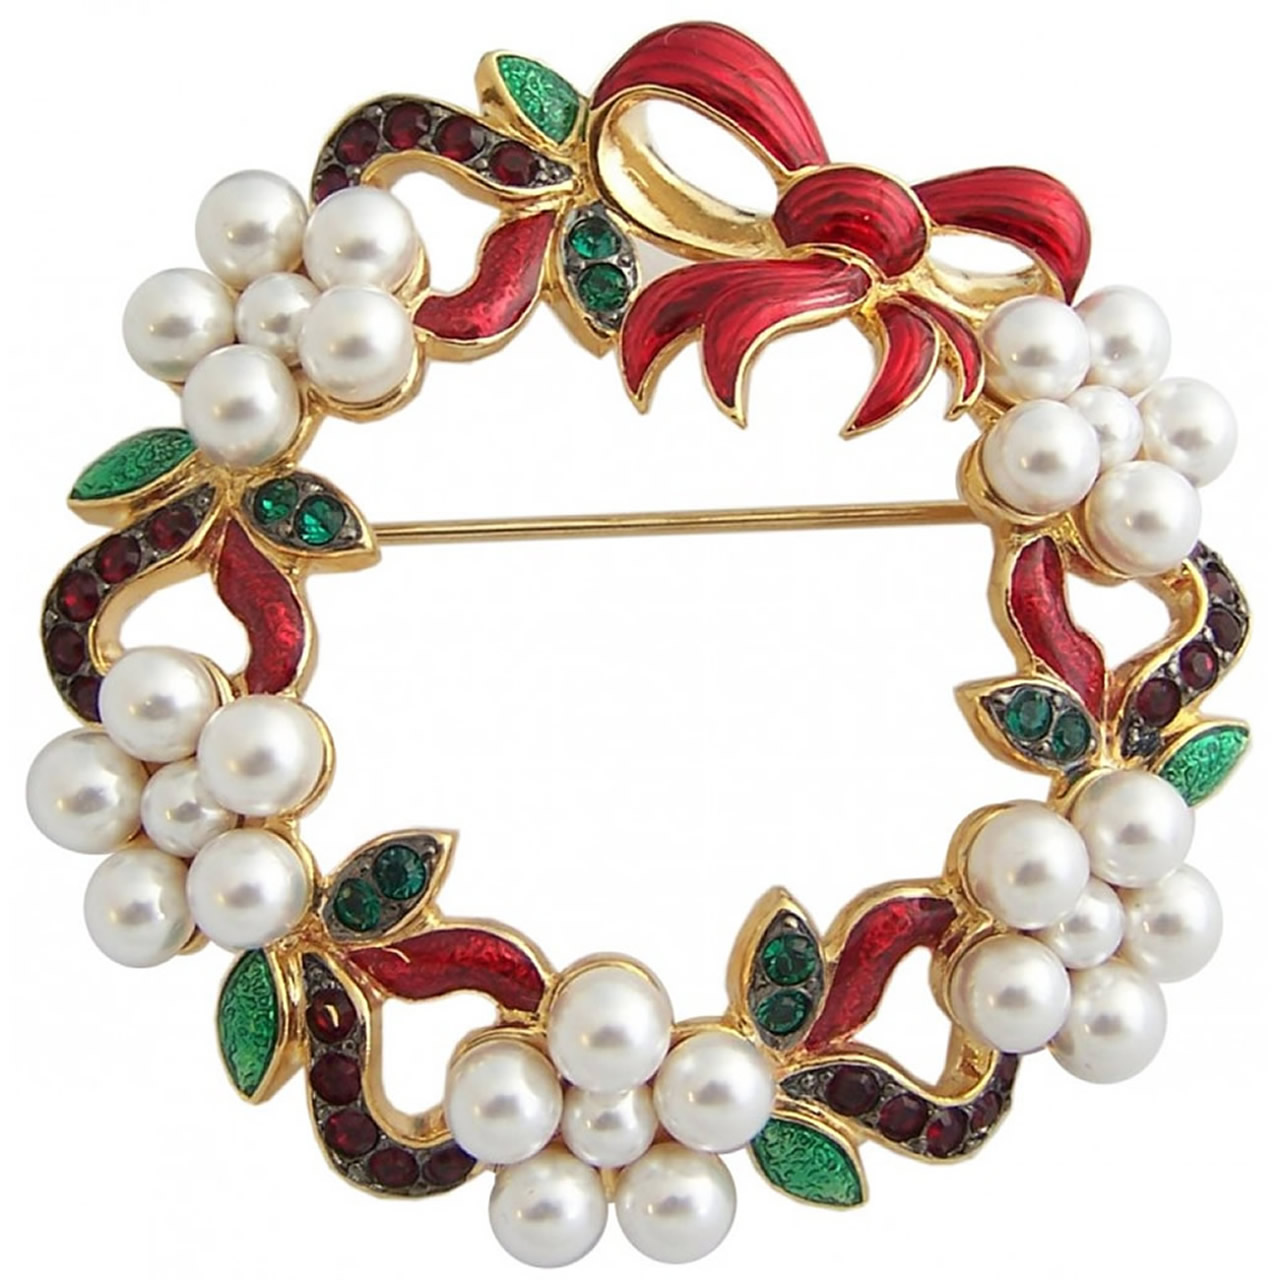 Gold Plated Christmas Wreath Brooch With White Pearls And Coloured Crystals